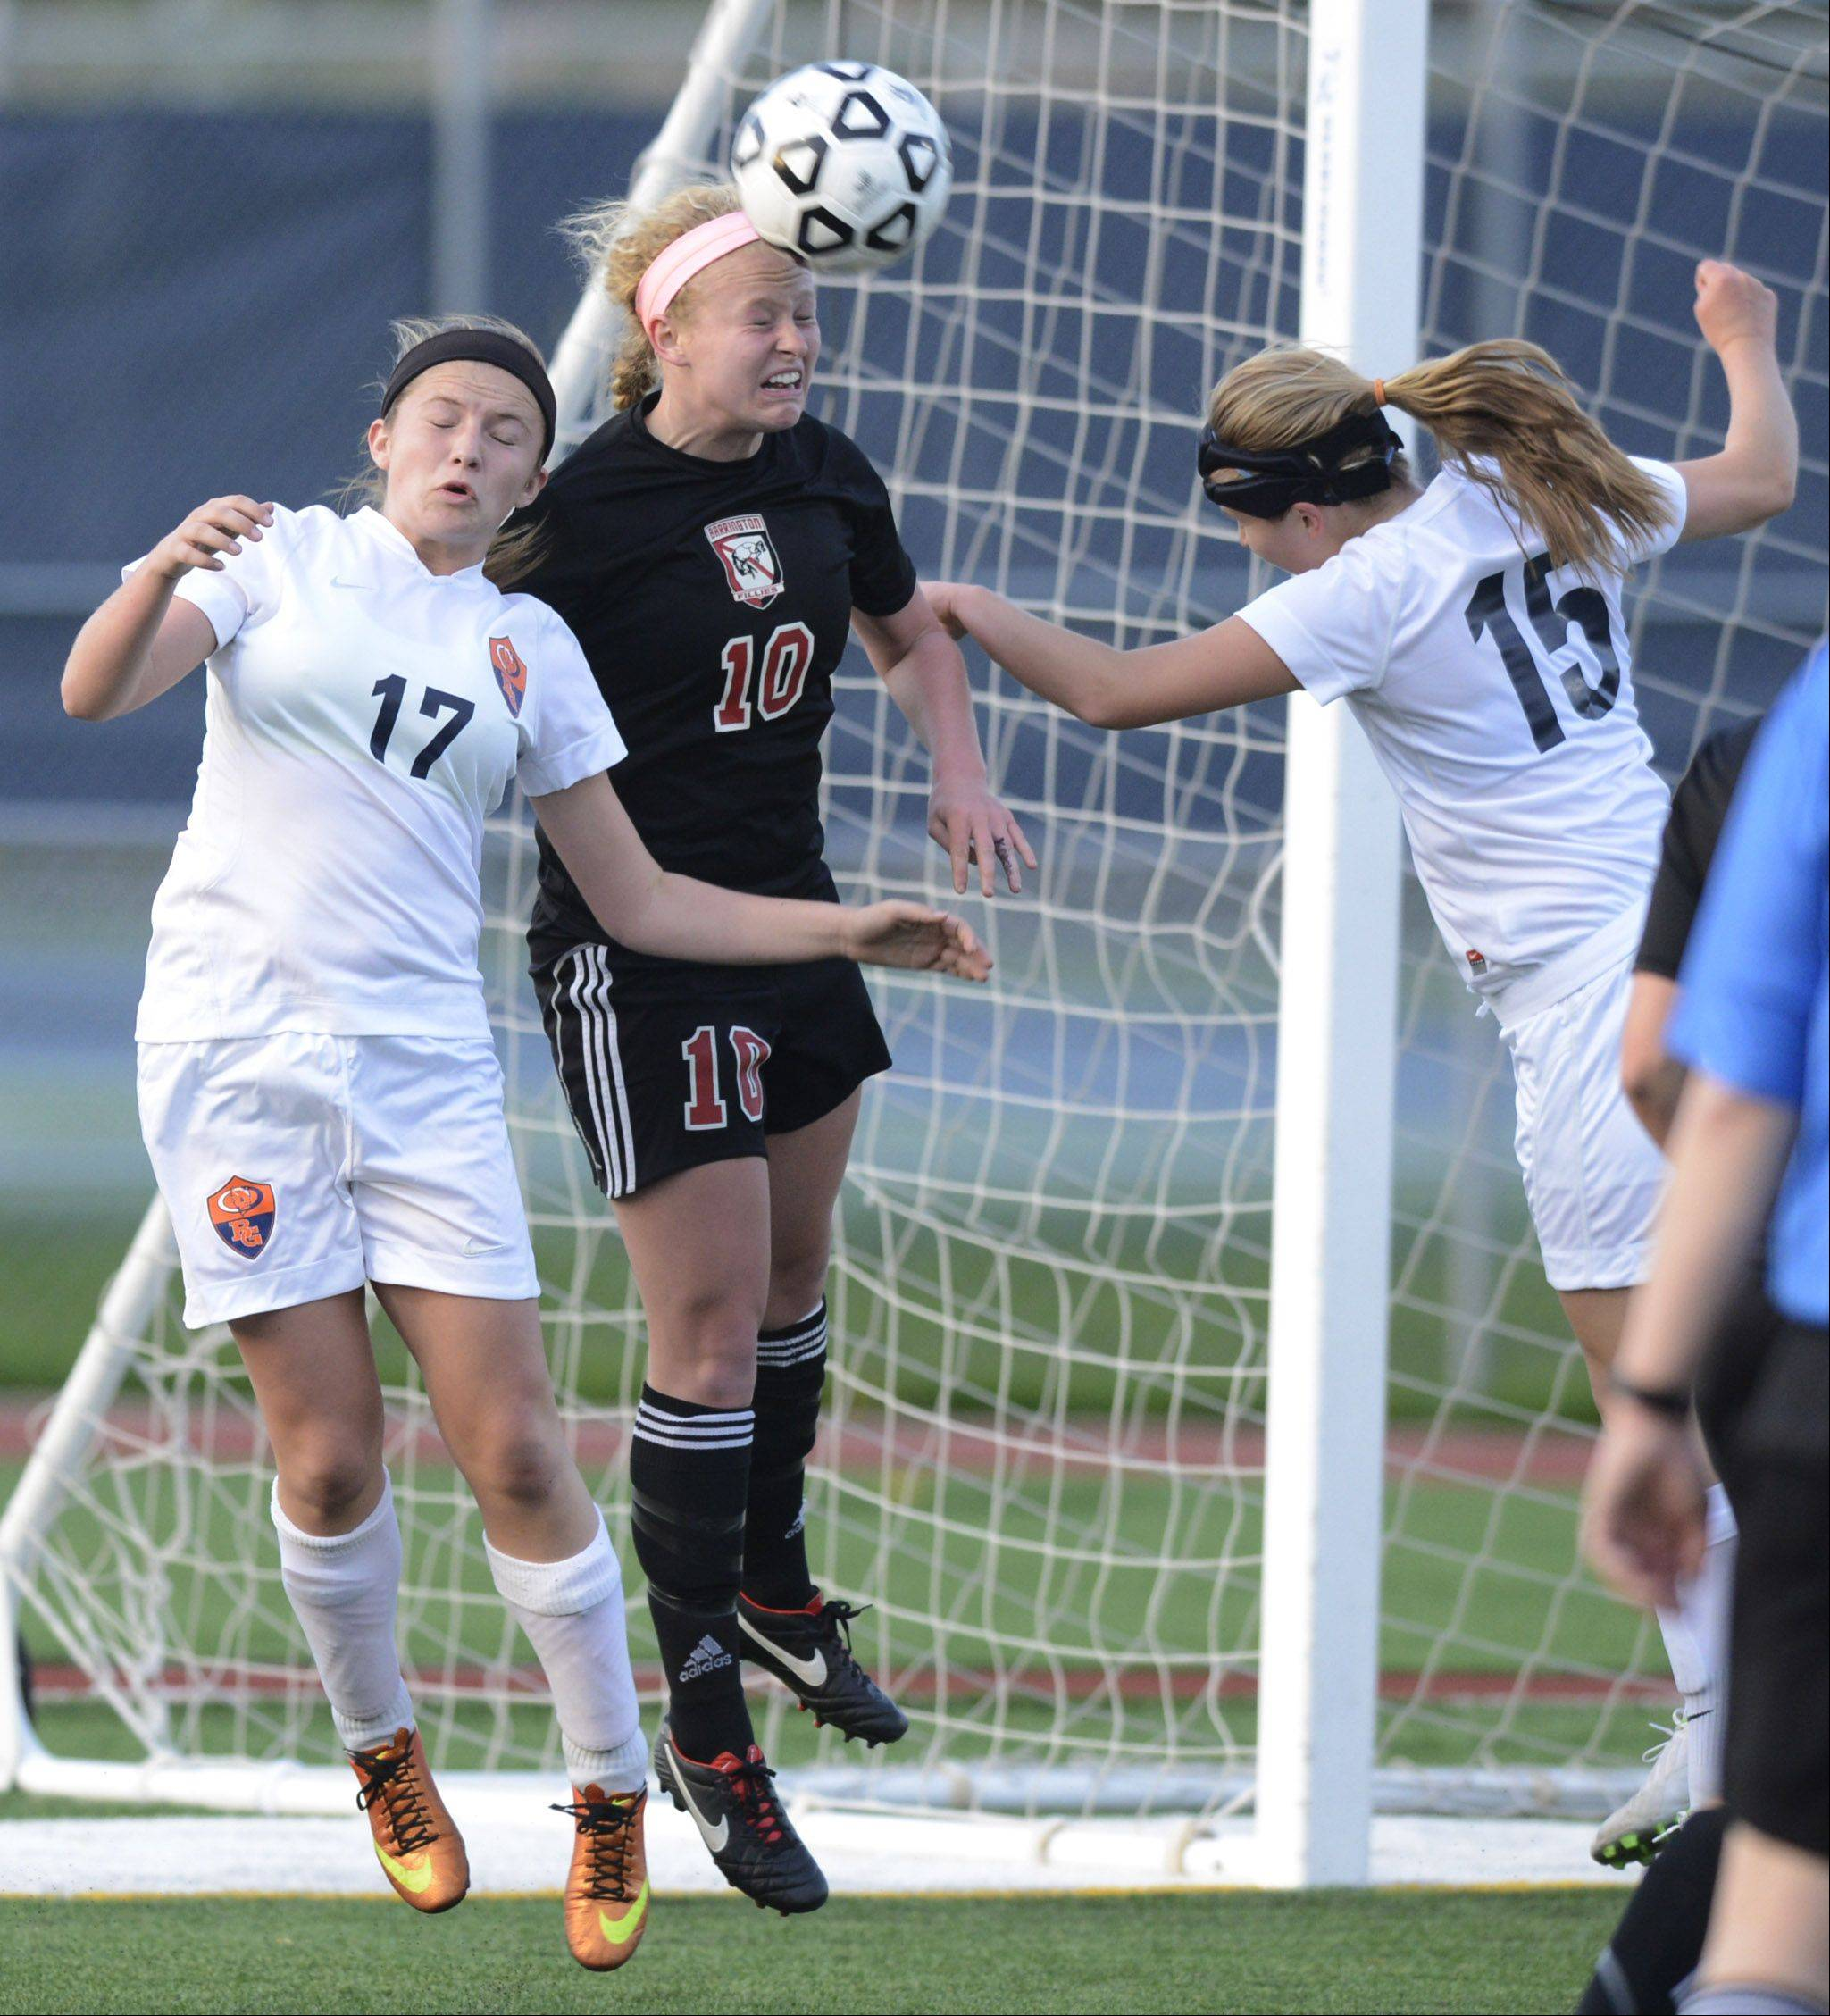 Barrington's Molly Pfeiffer, gets between Buffalo Grove's JayJay Lowery, left, and Kelly VandeMerkt for a header during Wednesday's Mid-Suburban League championship game at Buffalo Grove.